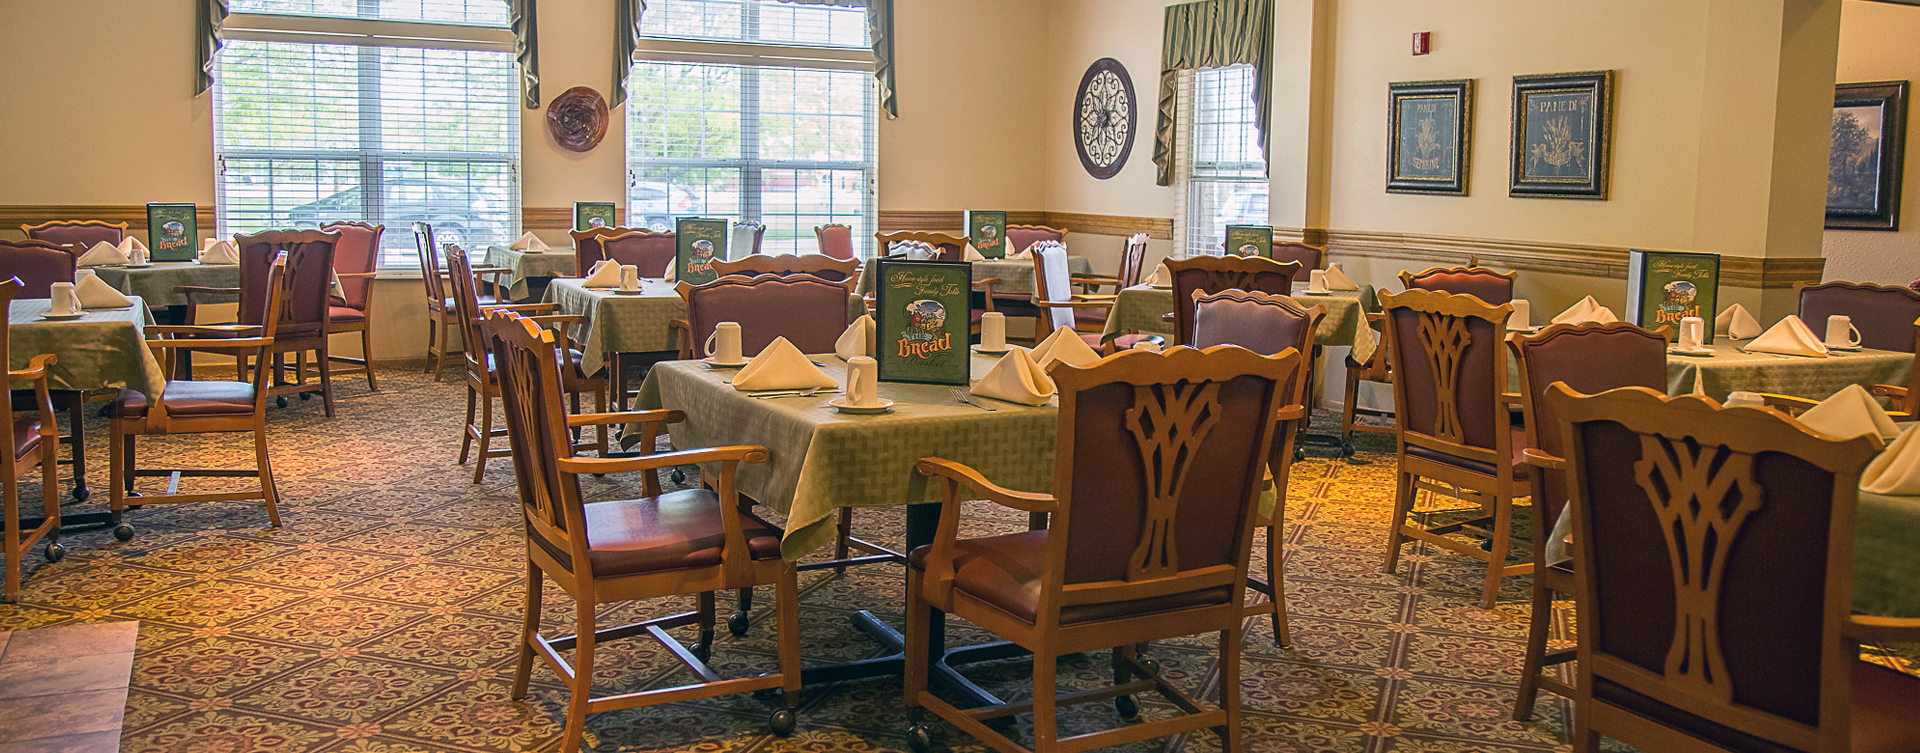 Enjoy restaurant -style meals served three times a day in our dining room at Bickford of Burlington